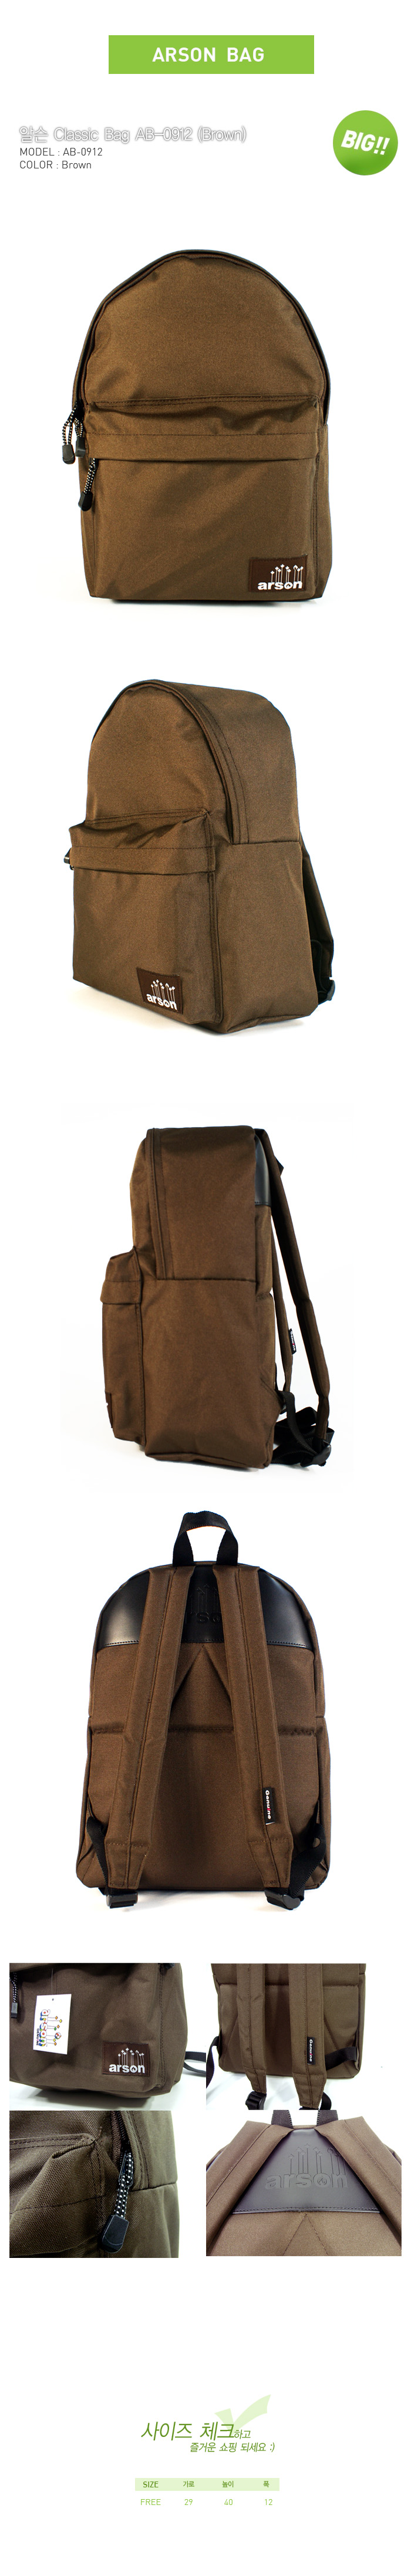 [ ARSON ] AB-0912 (Brown)/Backpack School Bag